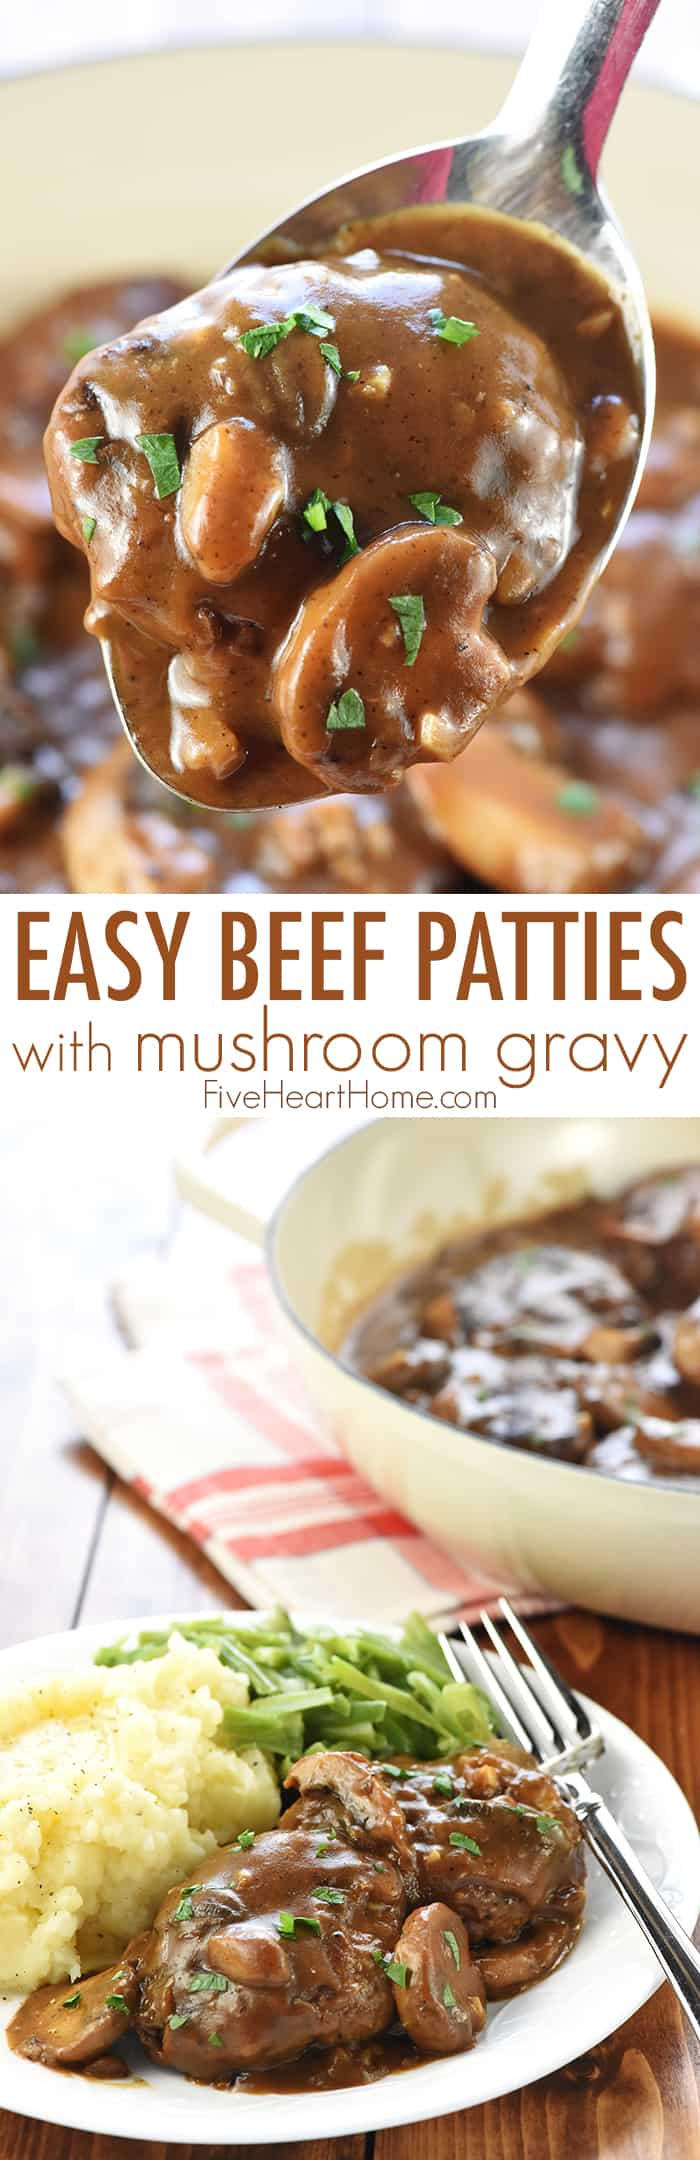 Easy Beef Patties with Mushroom Gravy ~ these mini Salisbury steaks in a rich, savory, gravy loaded with fresh mushrooms are a classic, comforting, ground beef dinner recipe! | FiveHeartHome.com